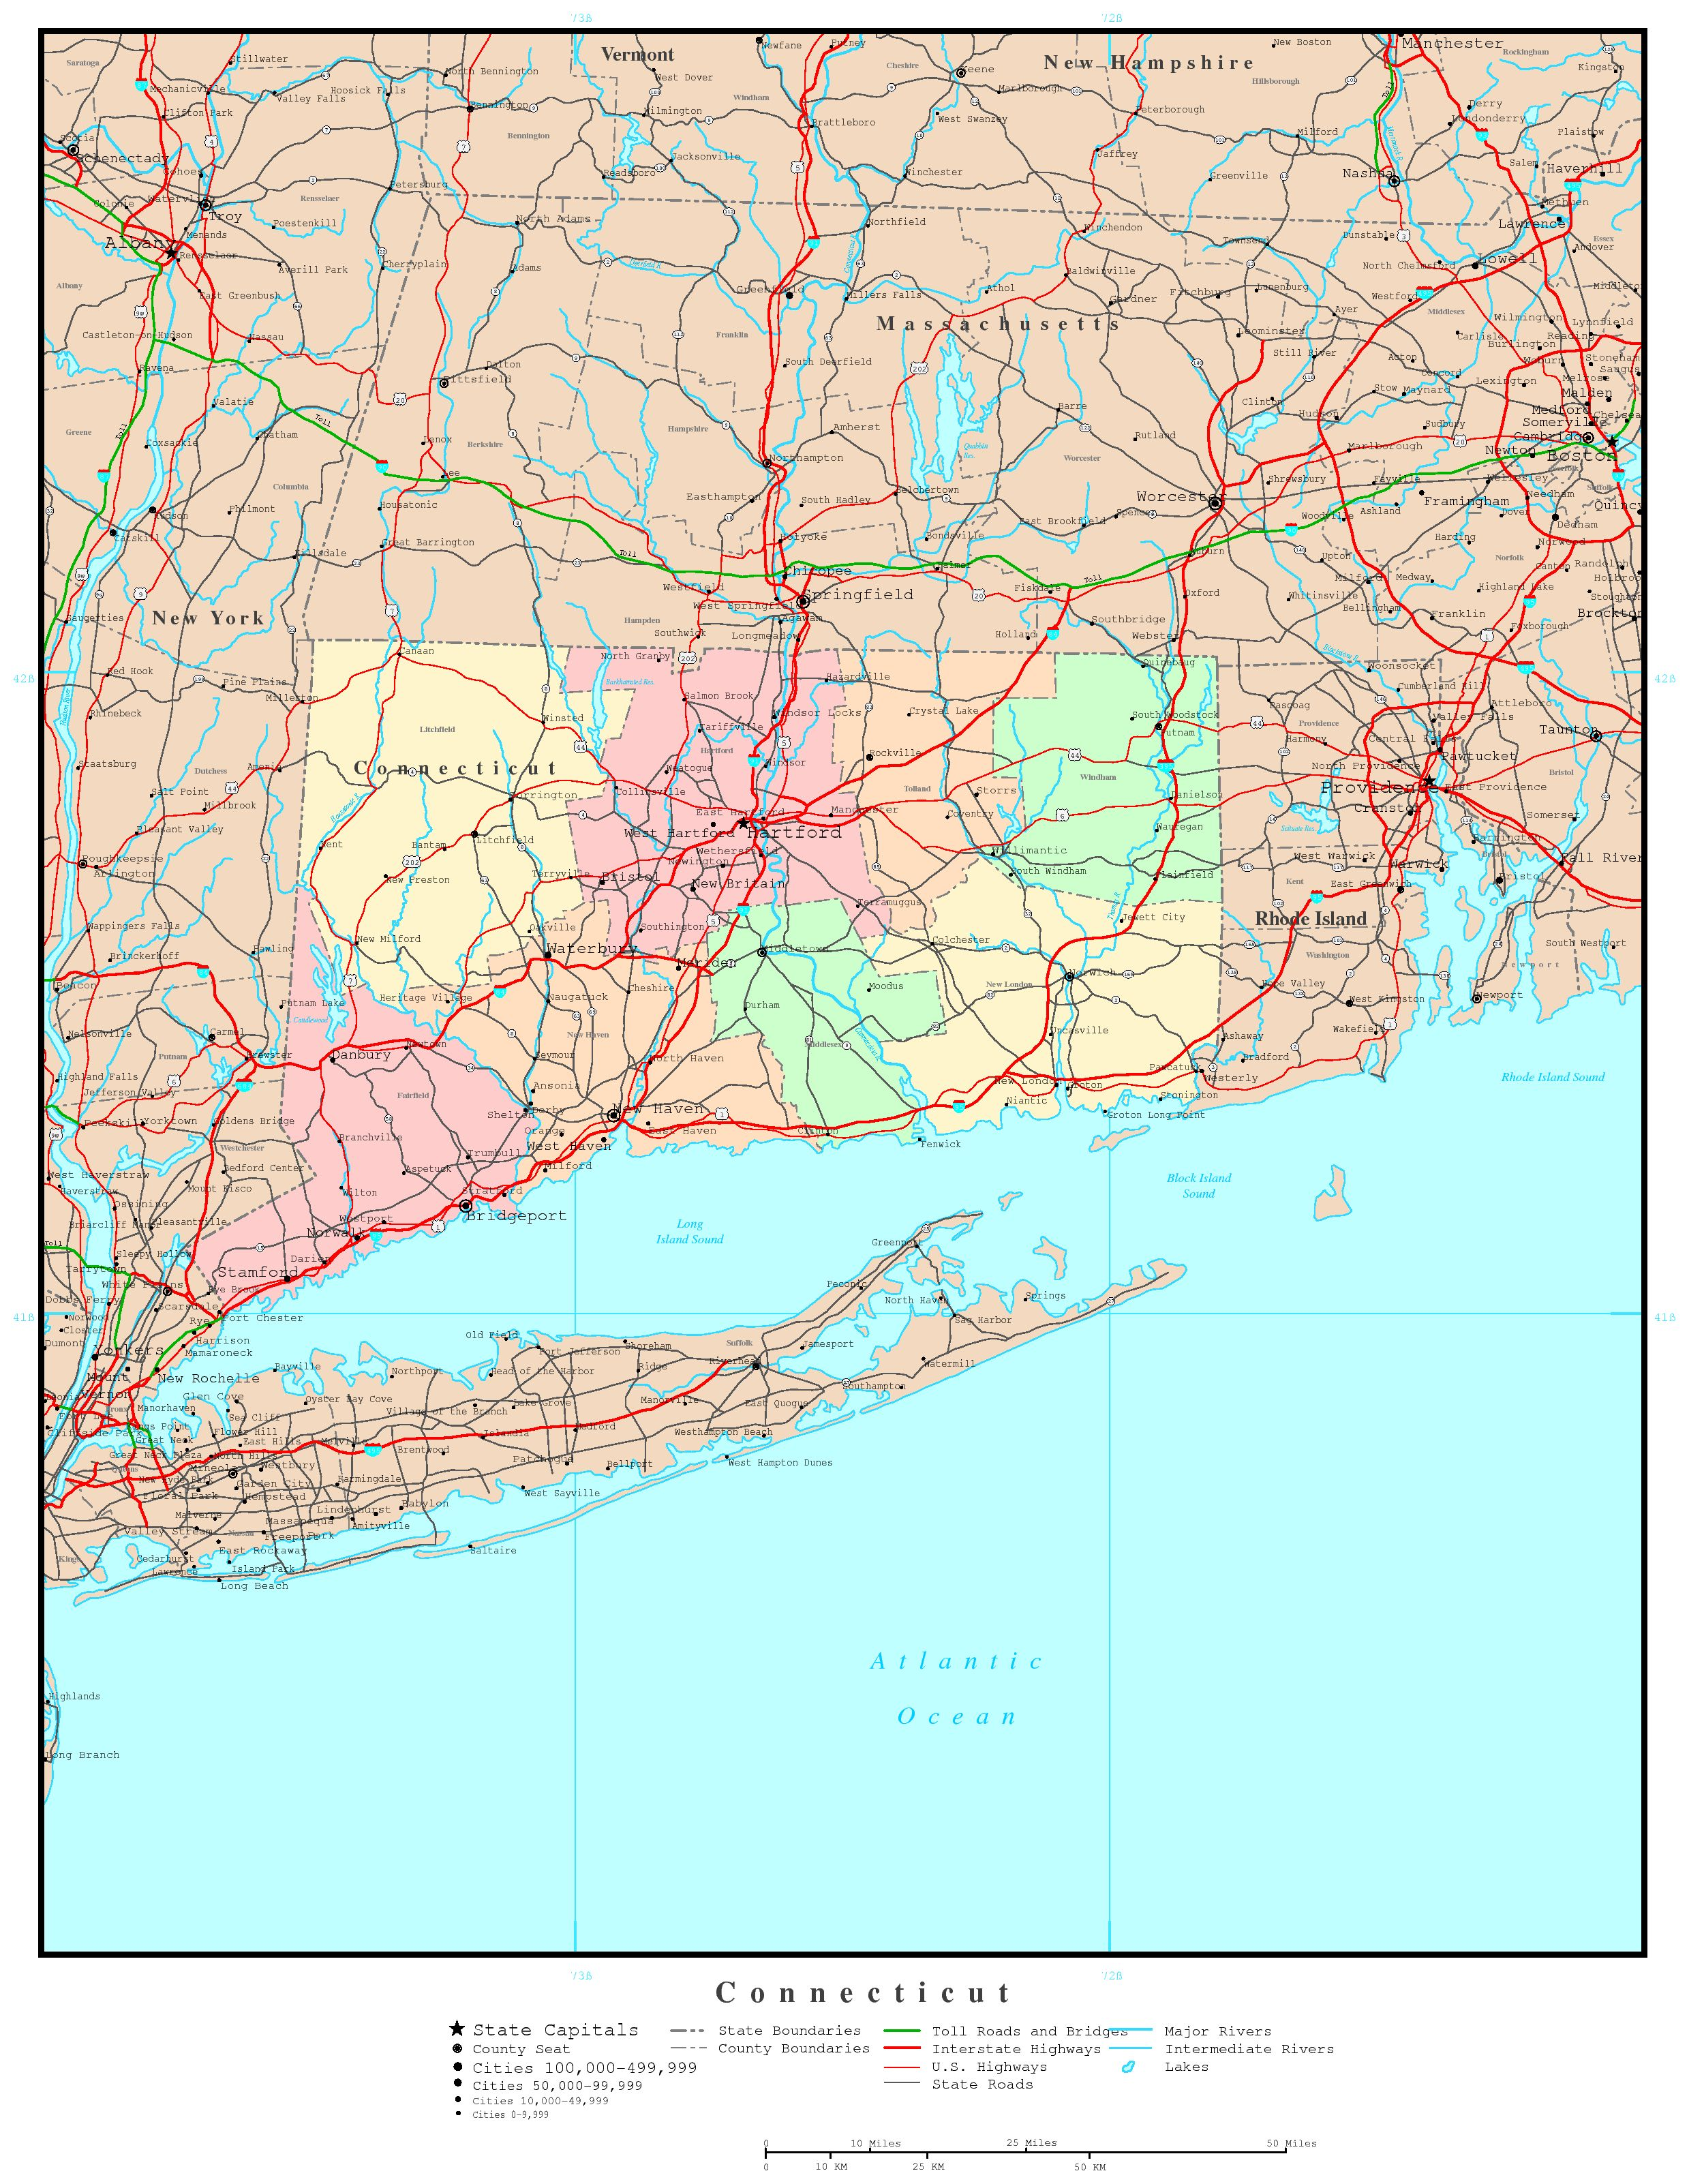 Connecticut Political Map - Connecticut on a us map